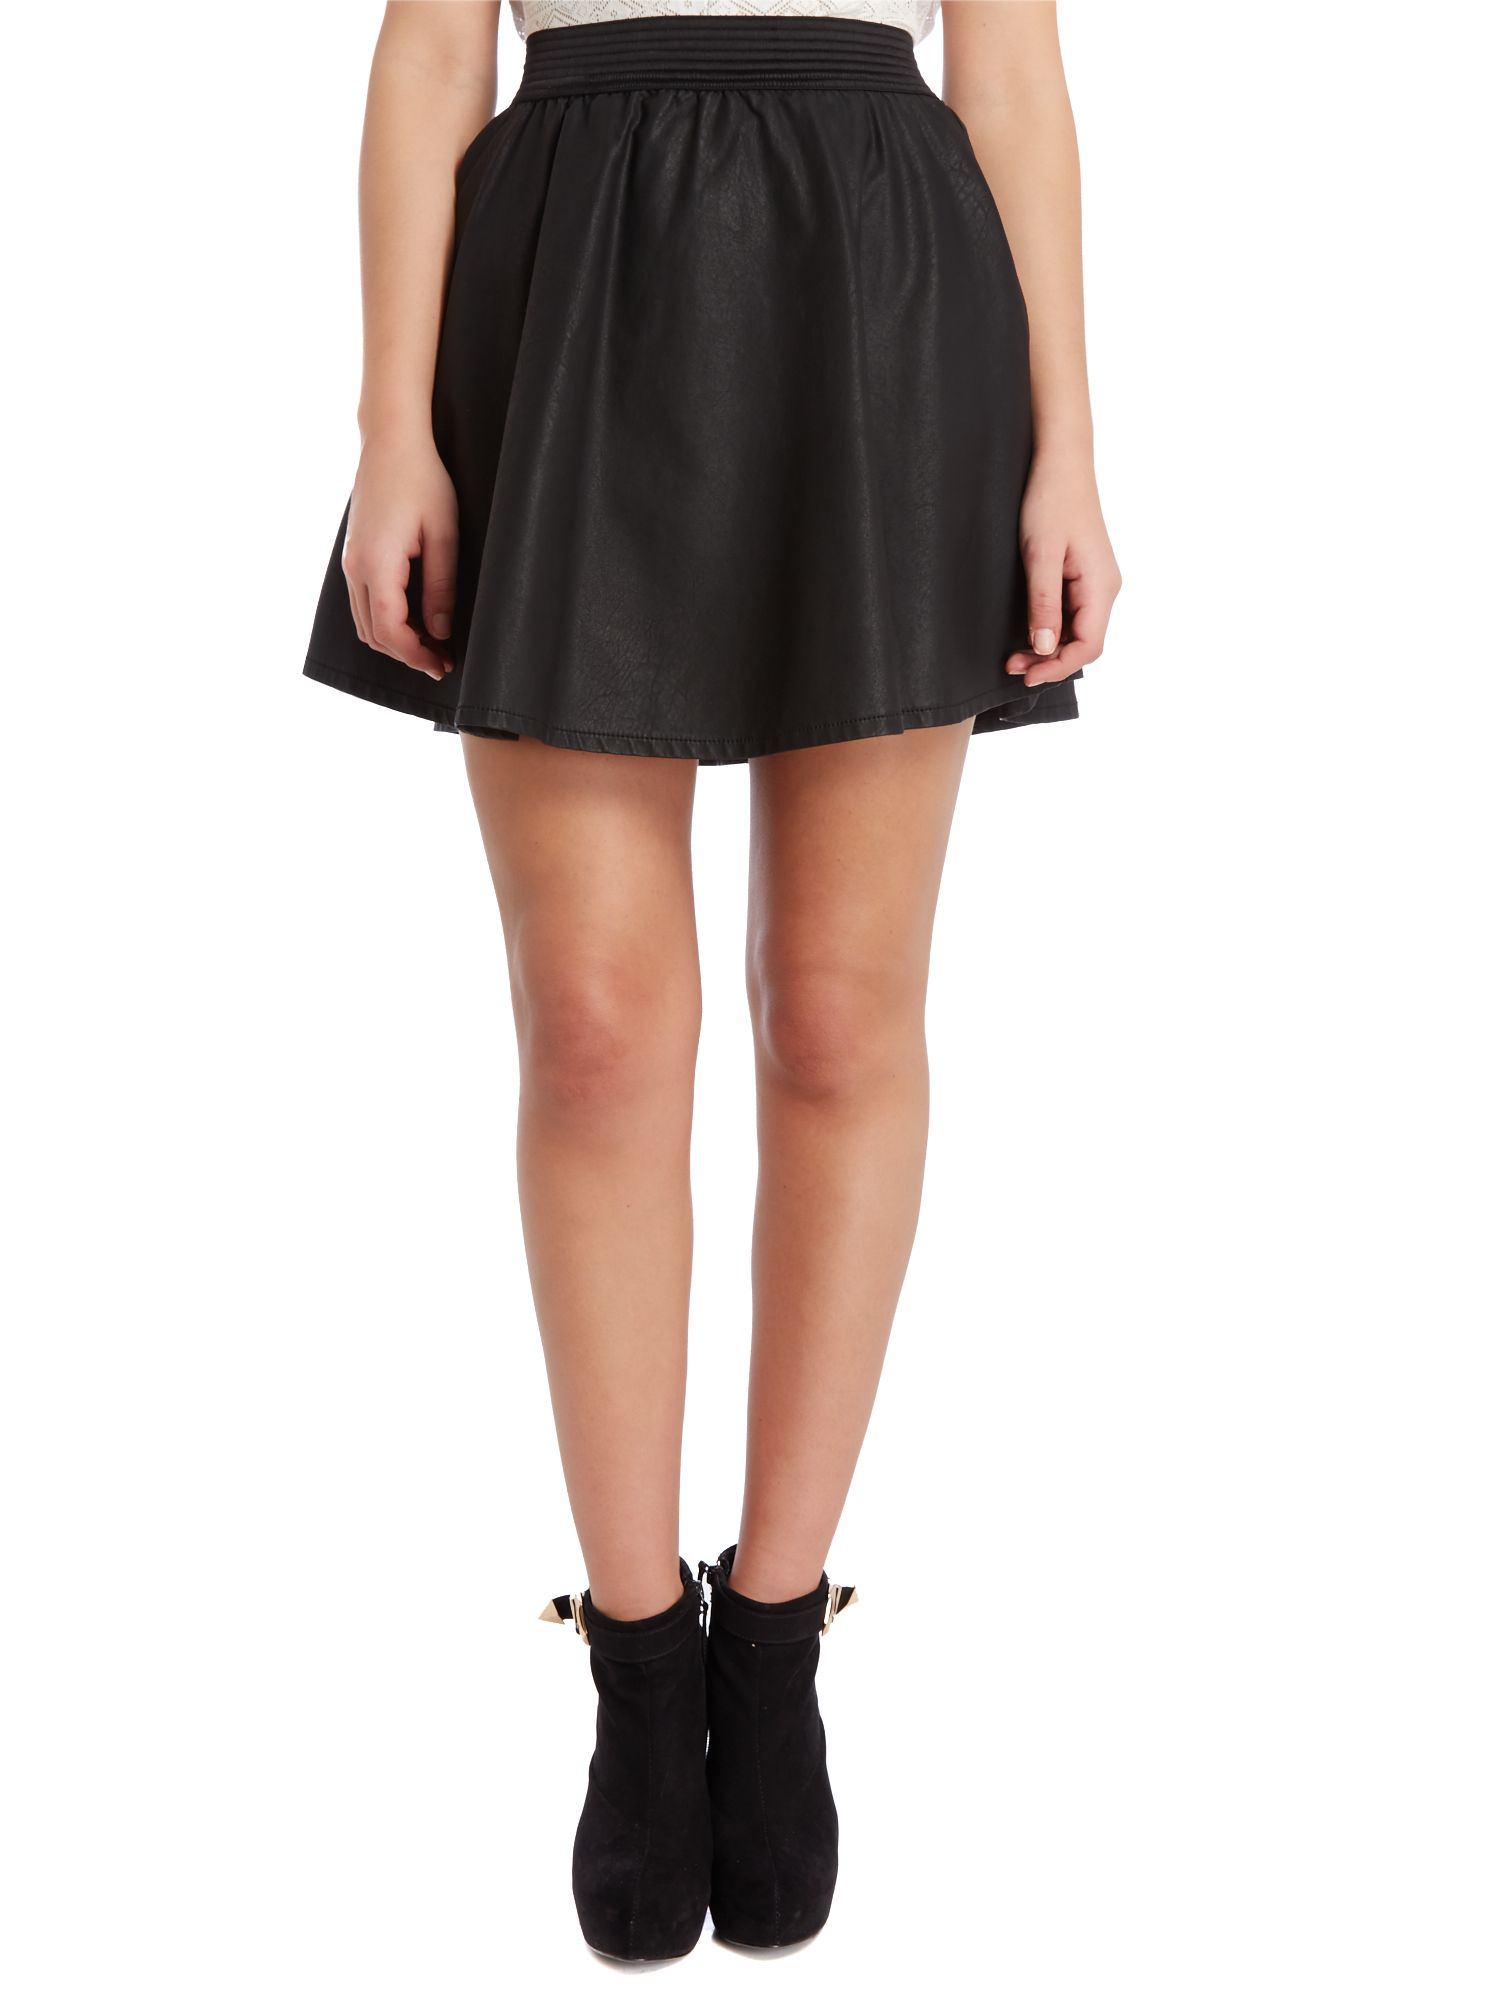 Pu skater mini skirt